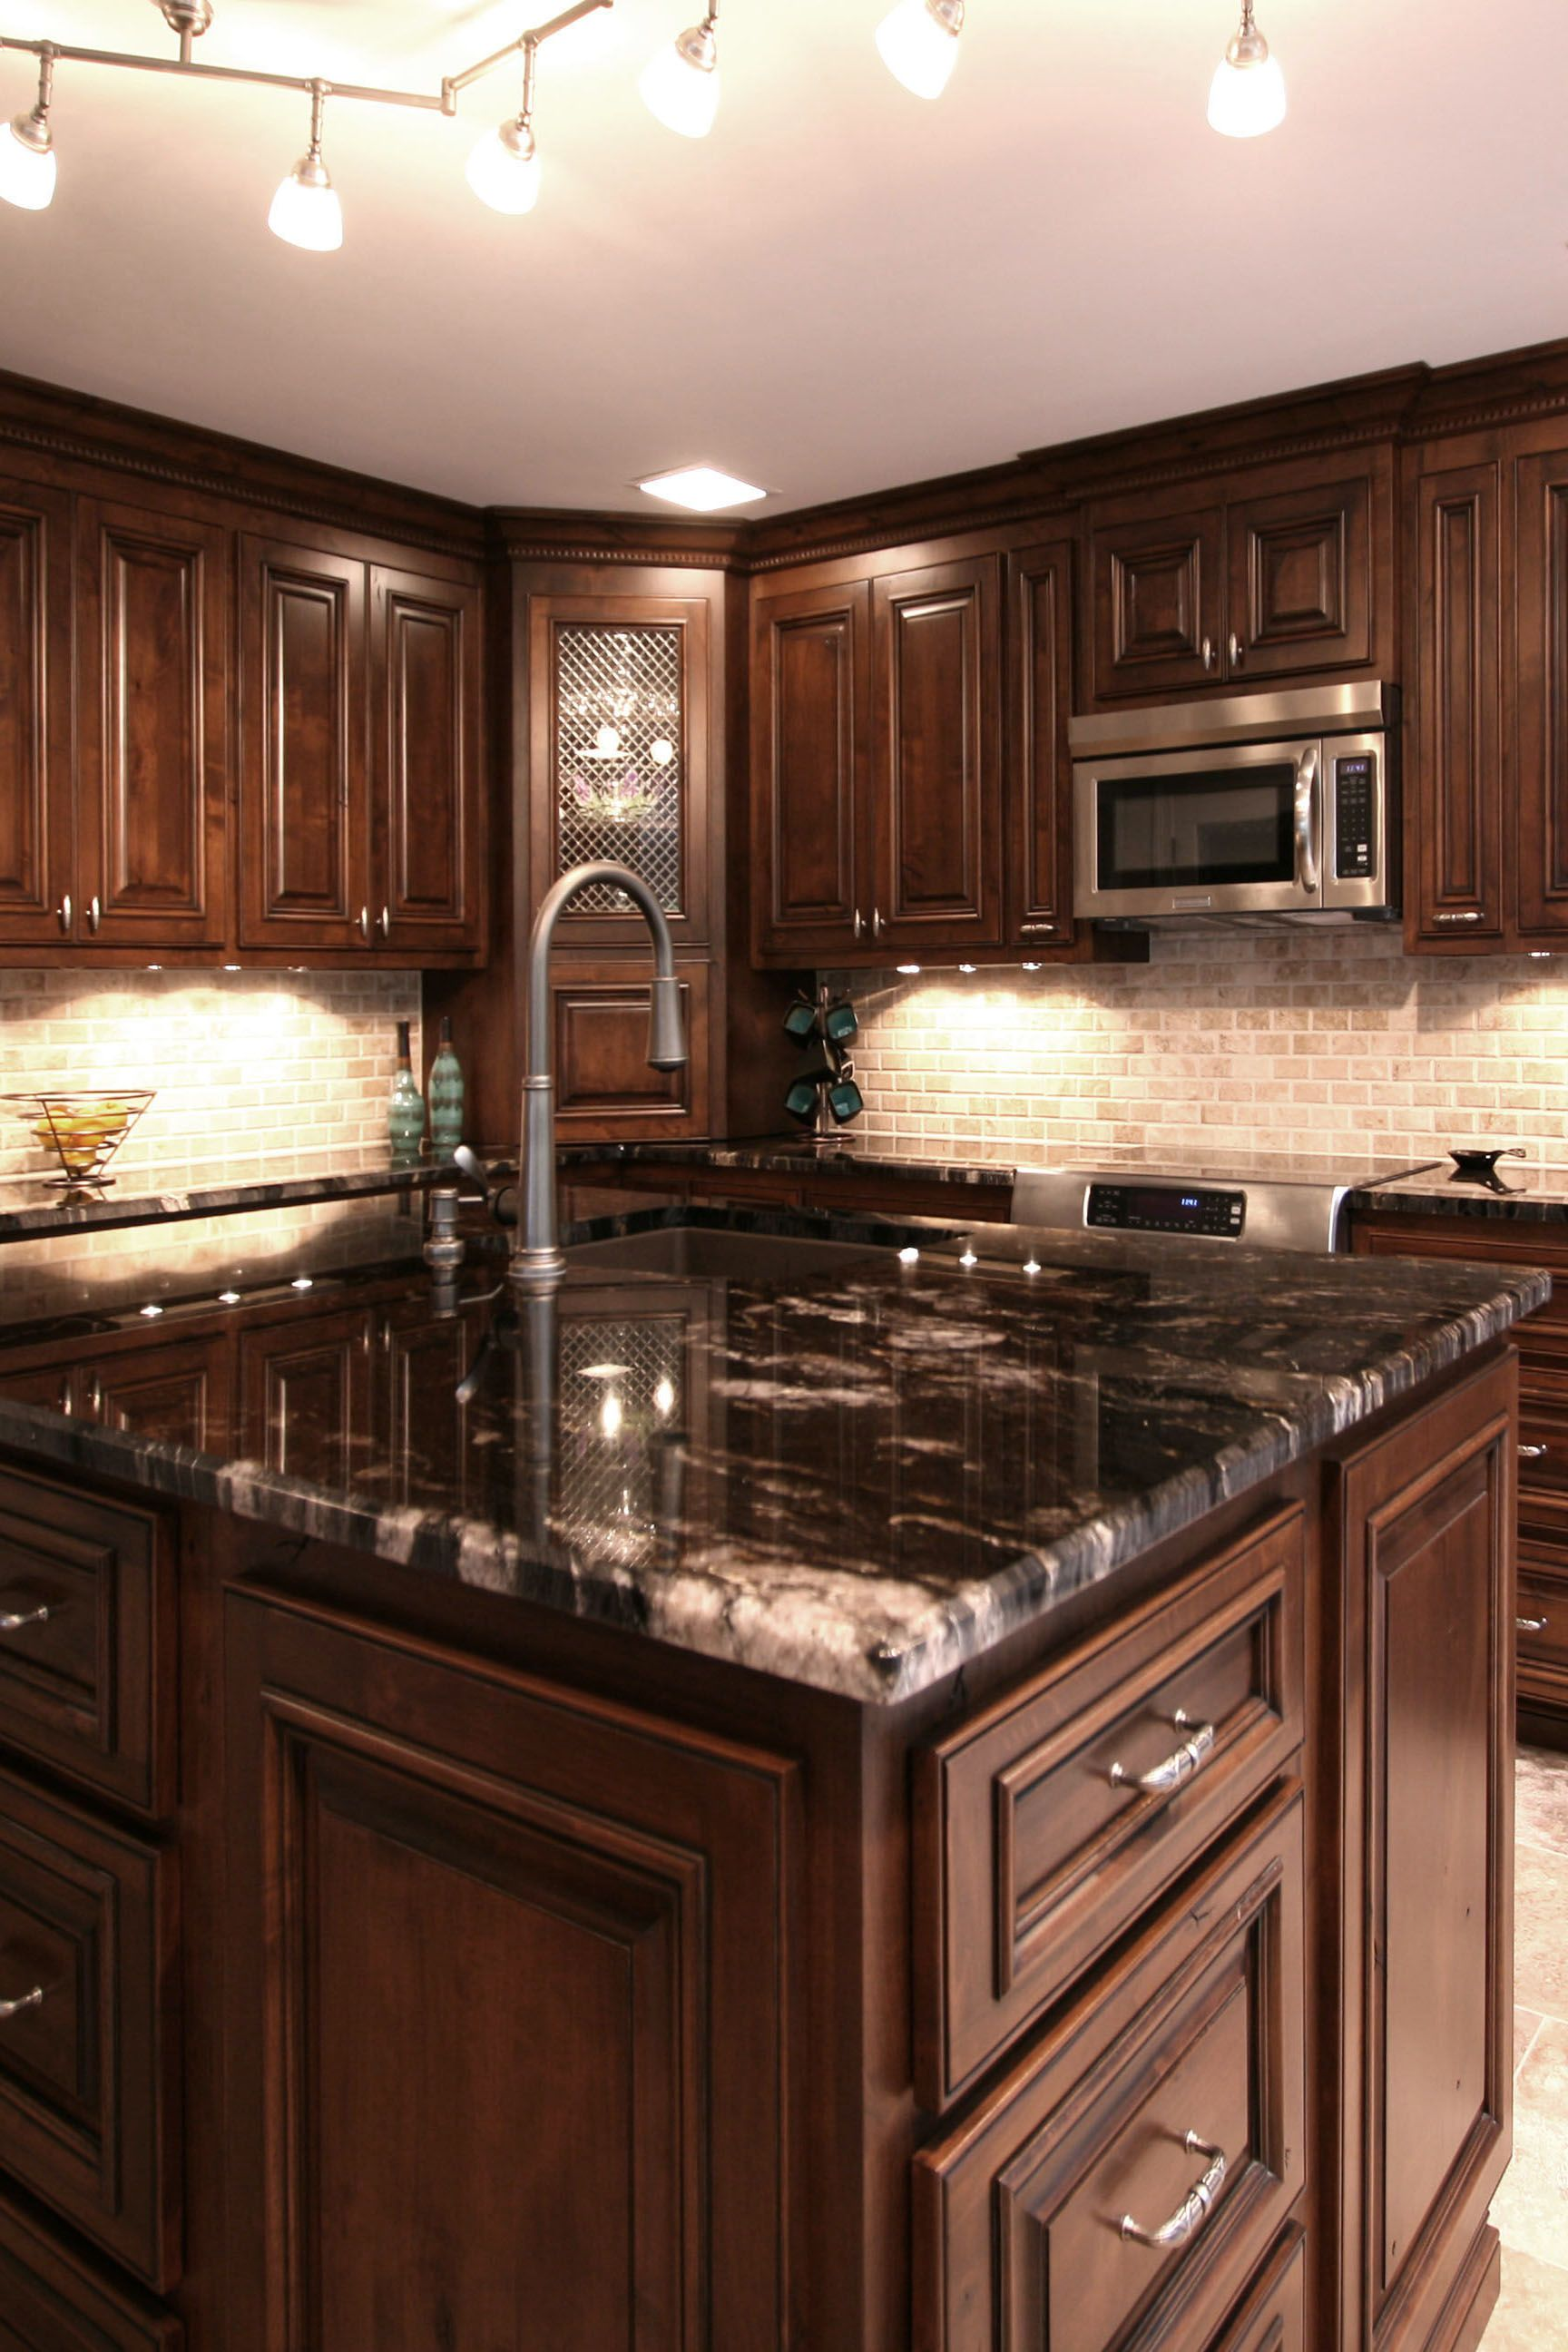 Dark Kitchen Countertops Farmhouse Style Kitchen Cabinets Dark Kitchen Countertops Kitchen Renovation